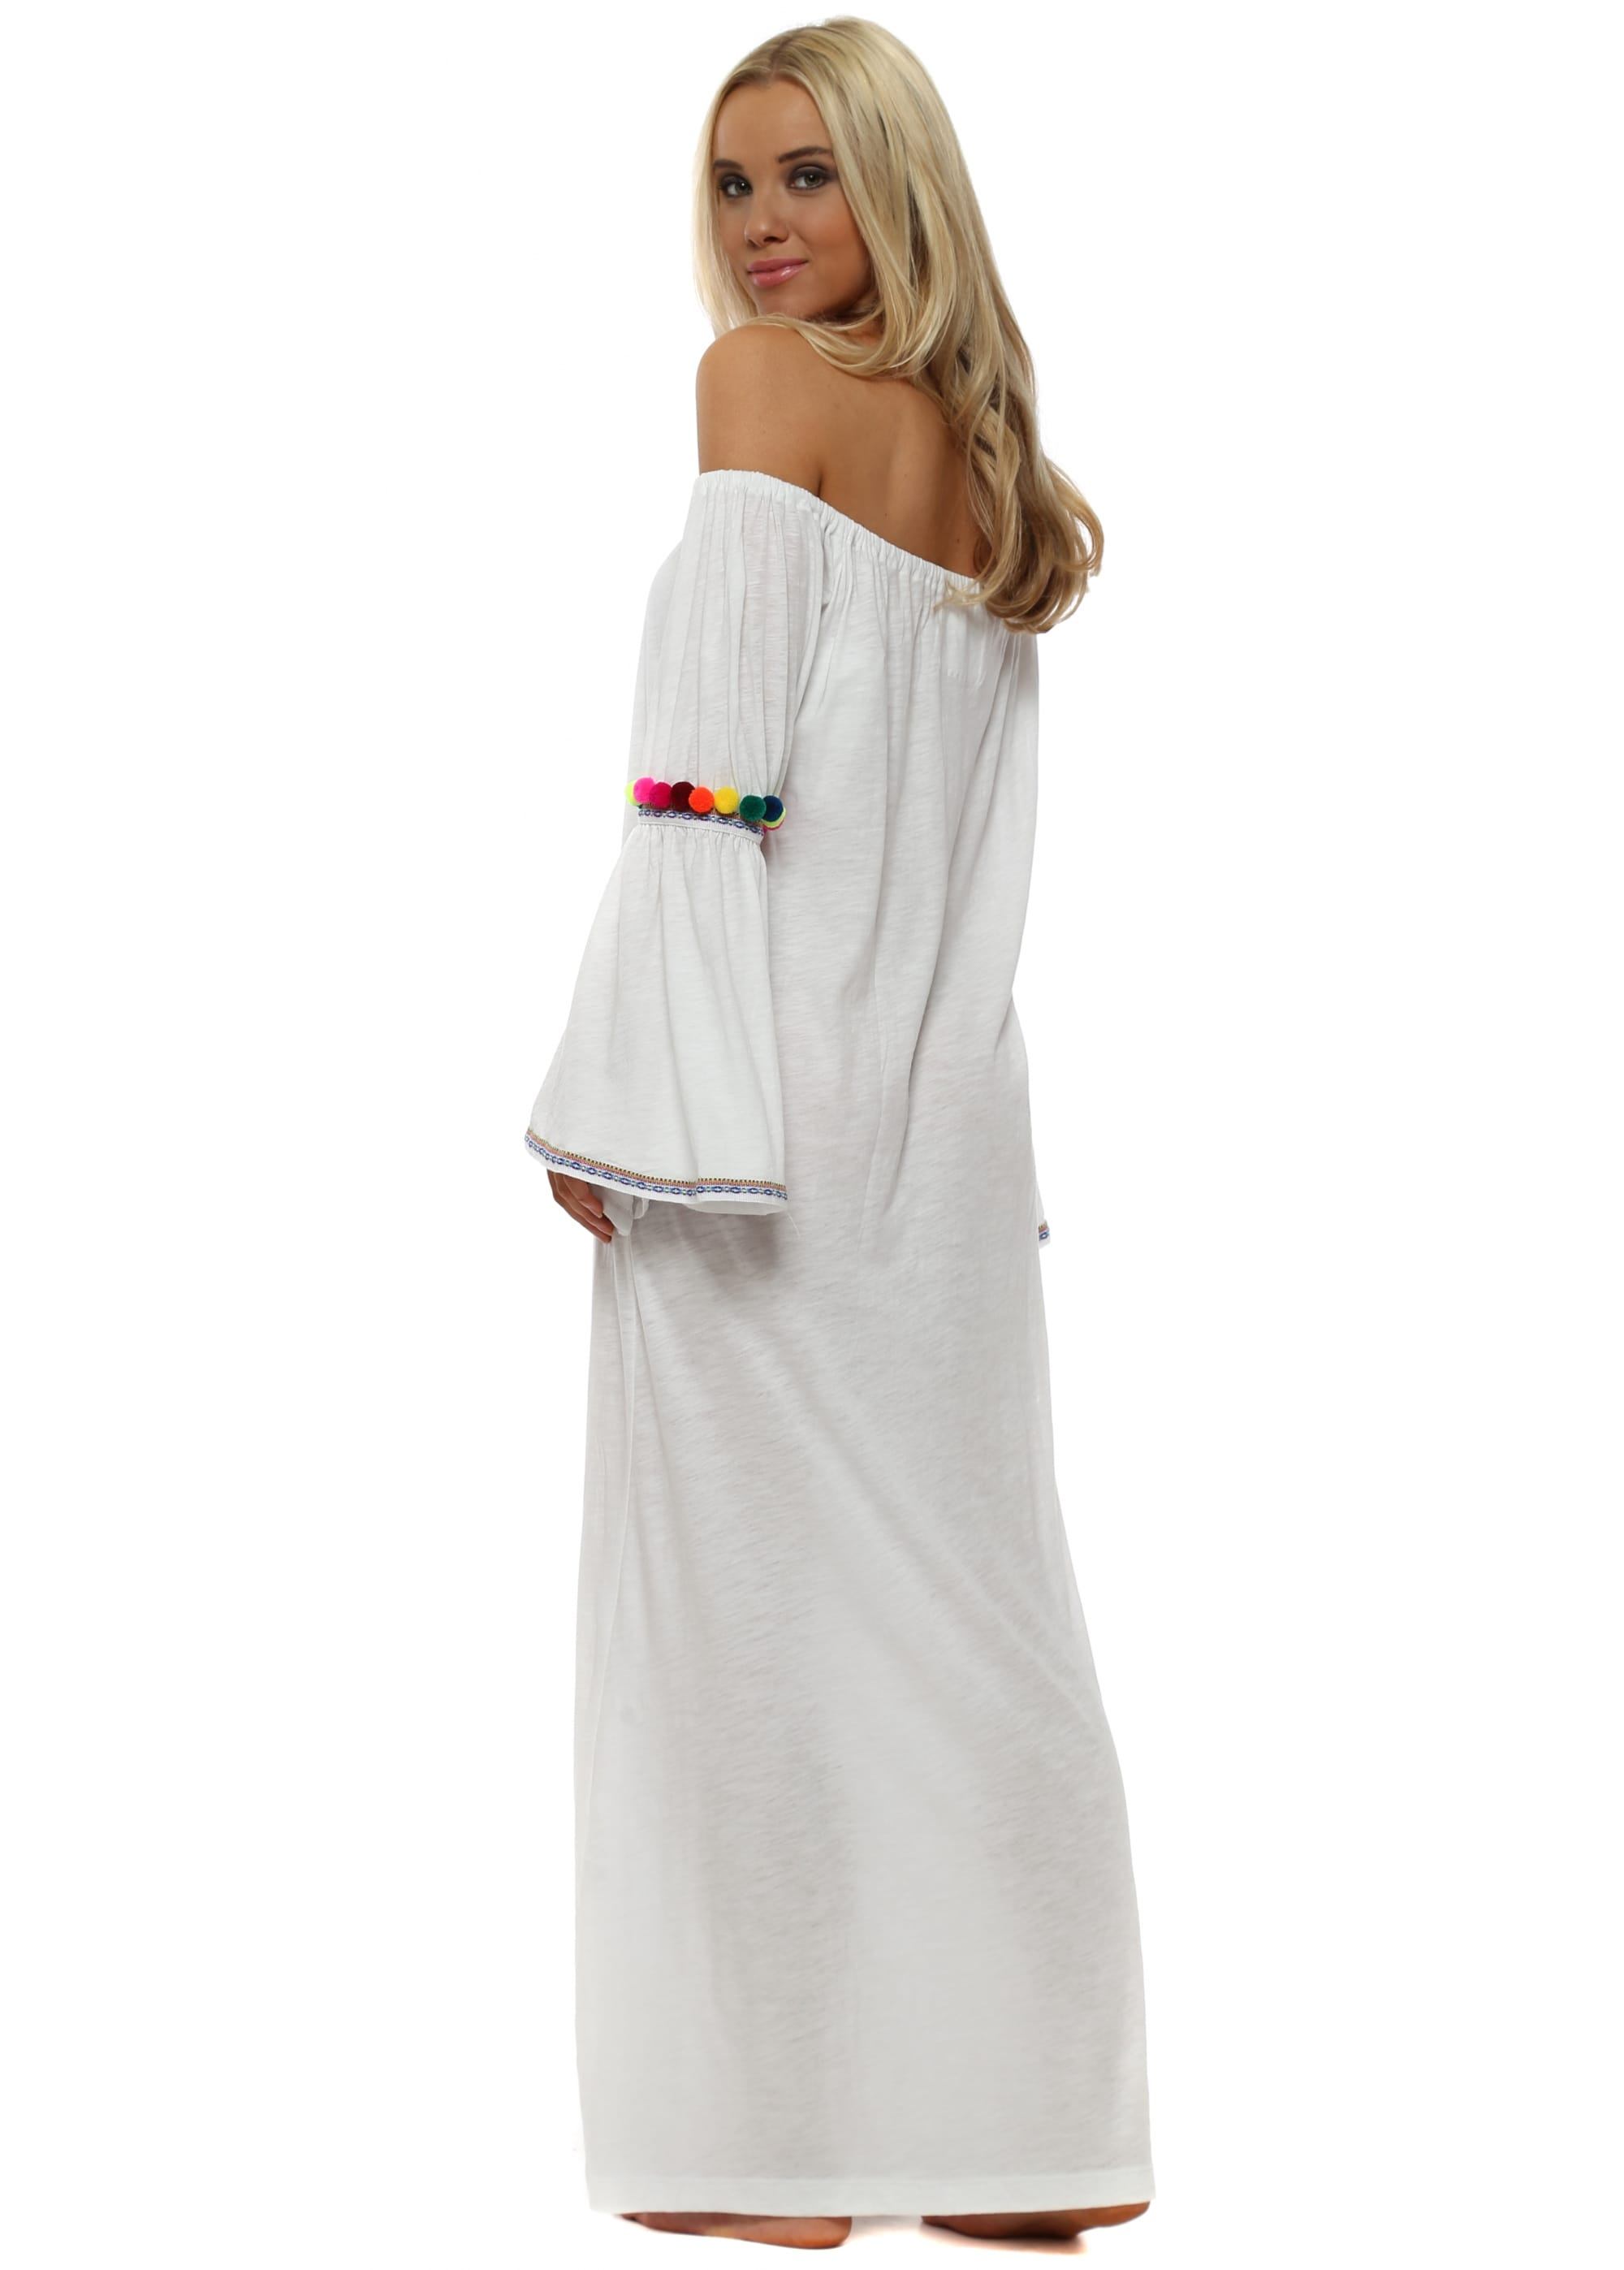 446bdc4996d0 Pitusa Gypsy Dress In White Online Now